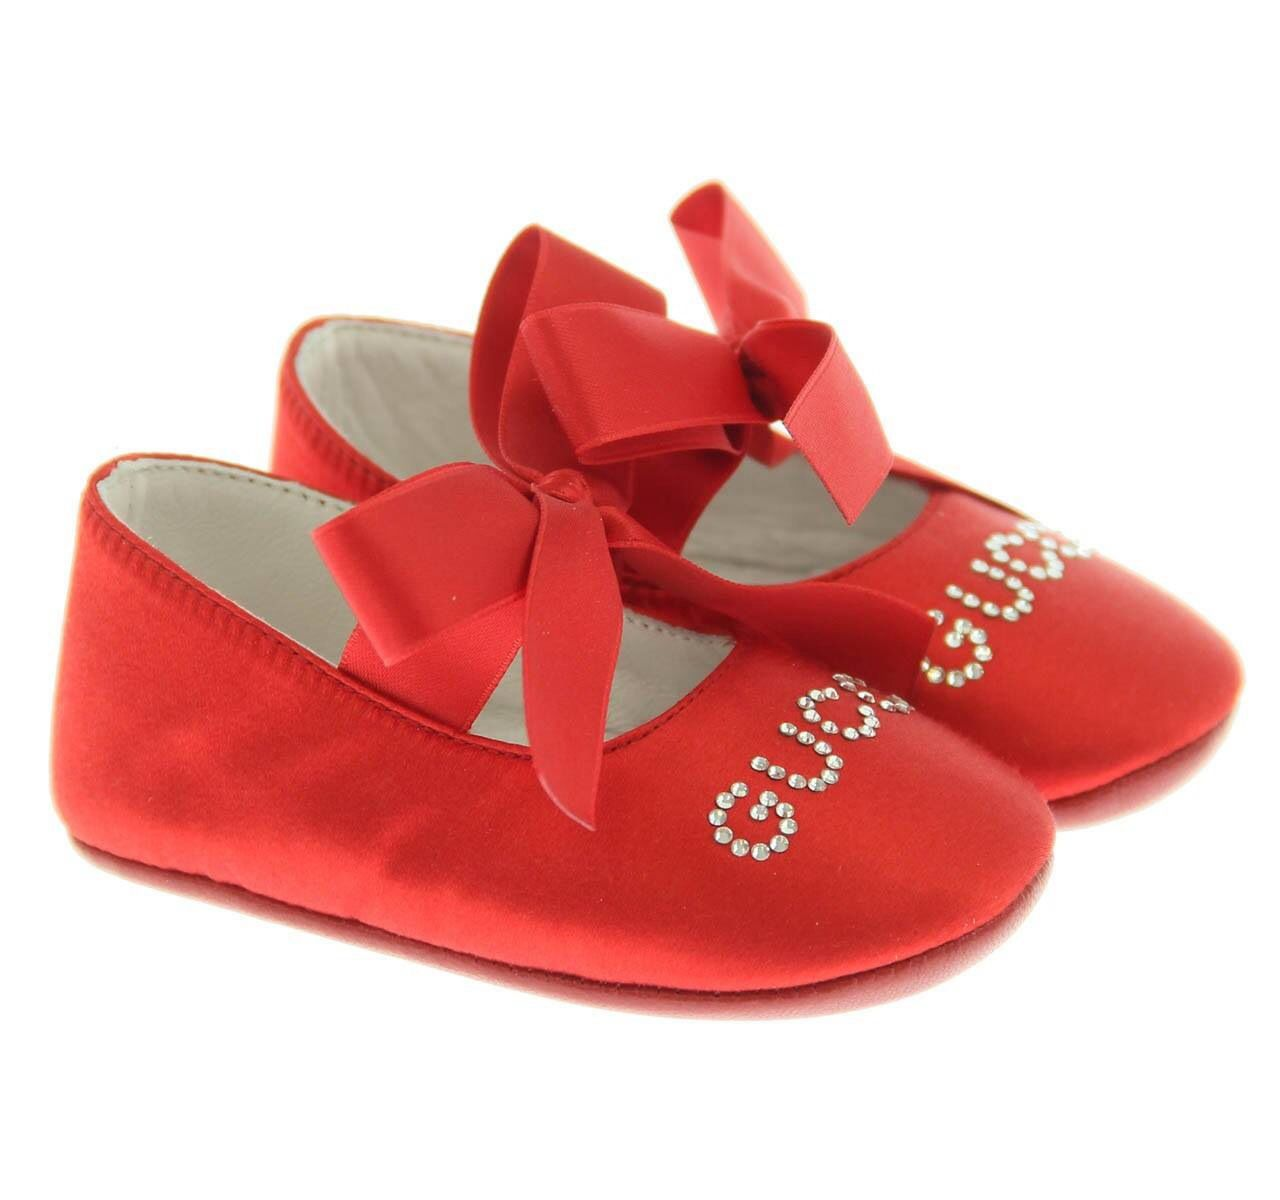 Stylish eve BABY GUCCI SHOES Sweet